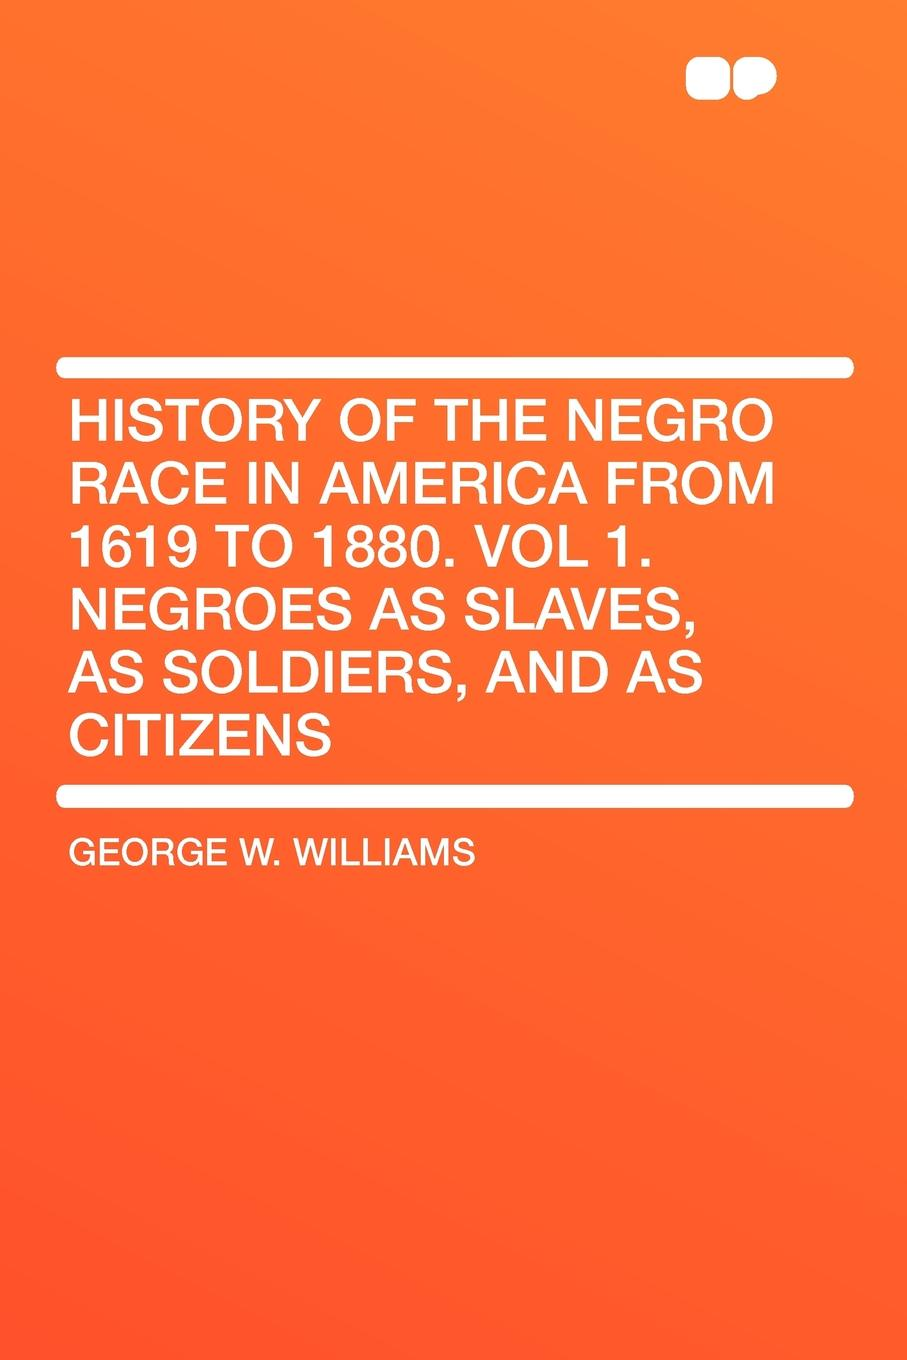 George W. Williams History of the Negro Race in America From 1619 to 1880. Vol 1. Negroes as Slaves, as Soldiers, and as Citizens